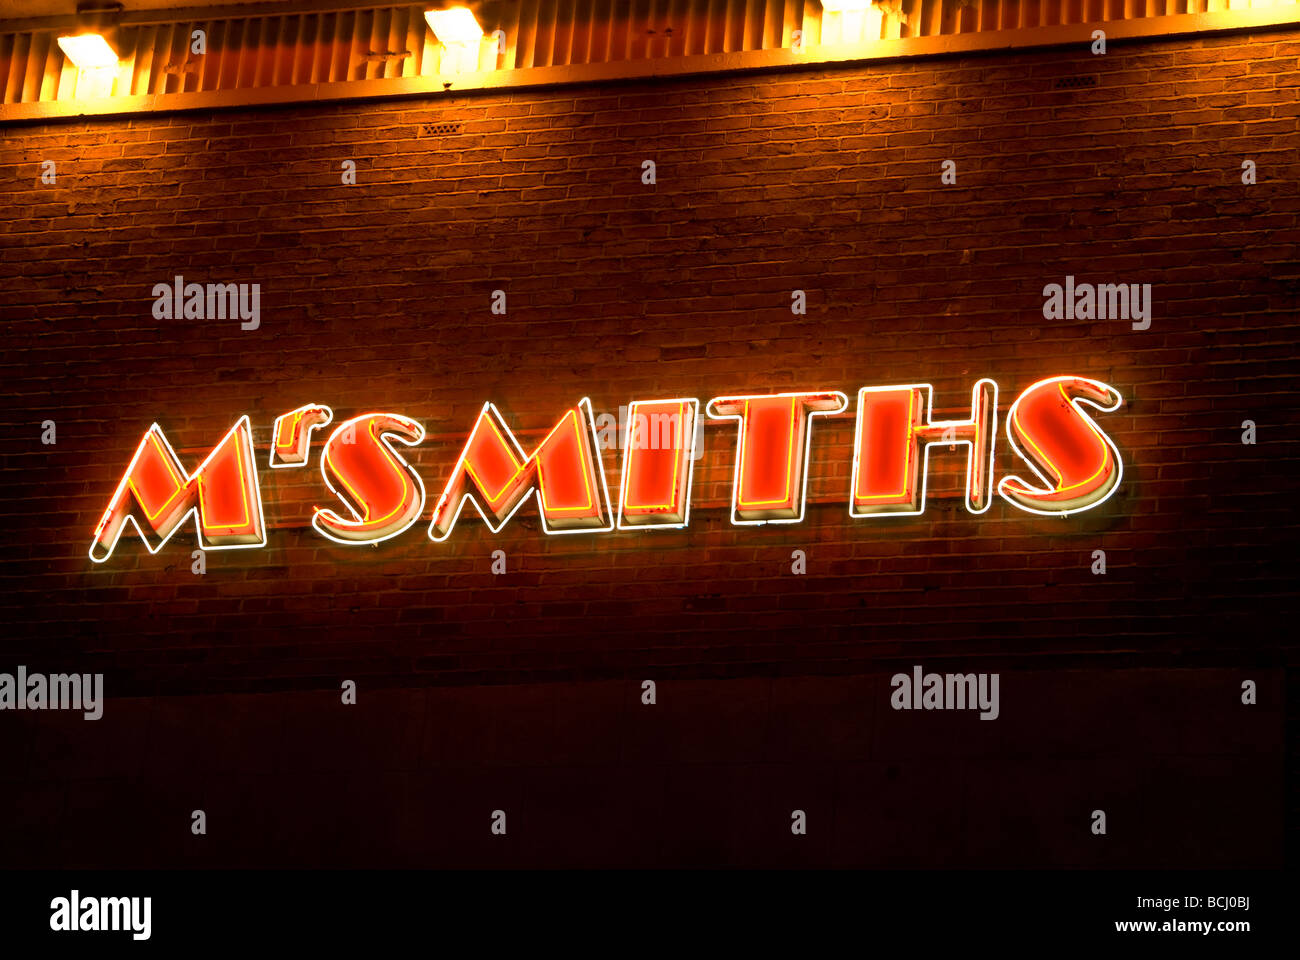 Art Deco neon sign on side of building 'Mr Smiths', Warrington